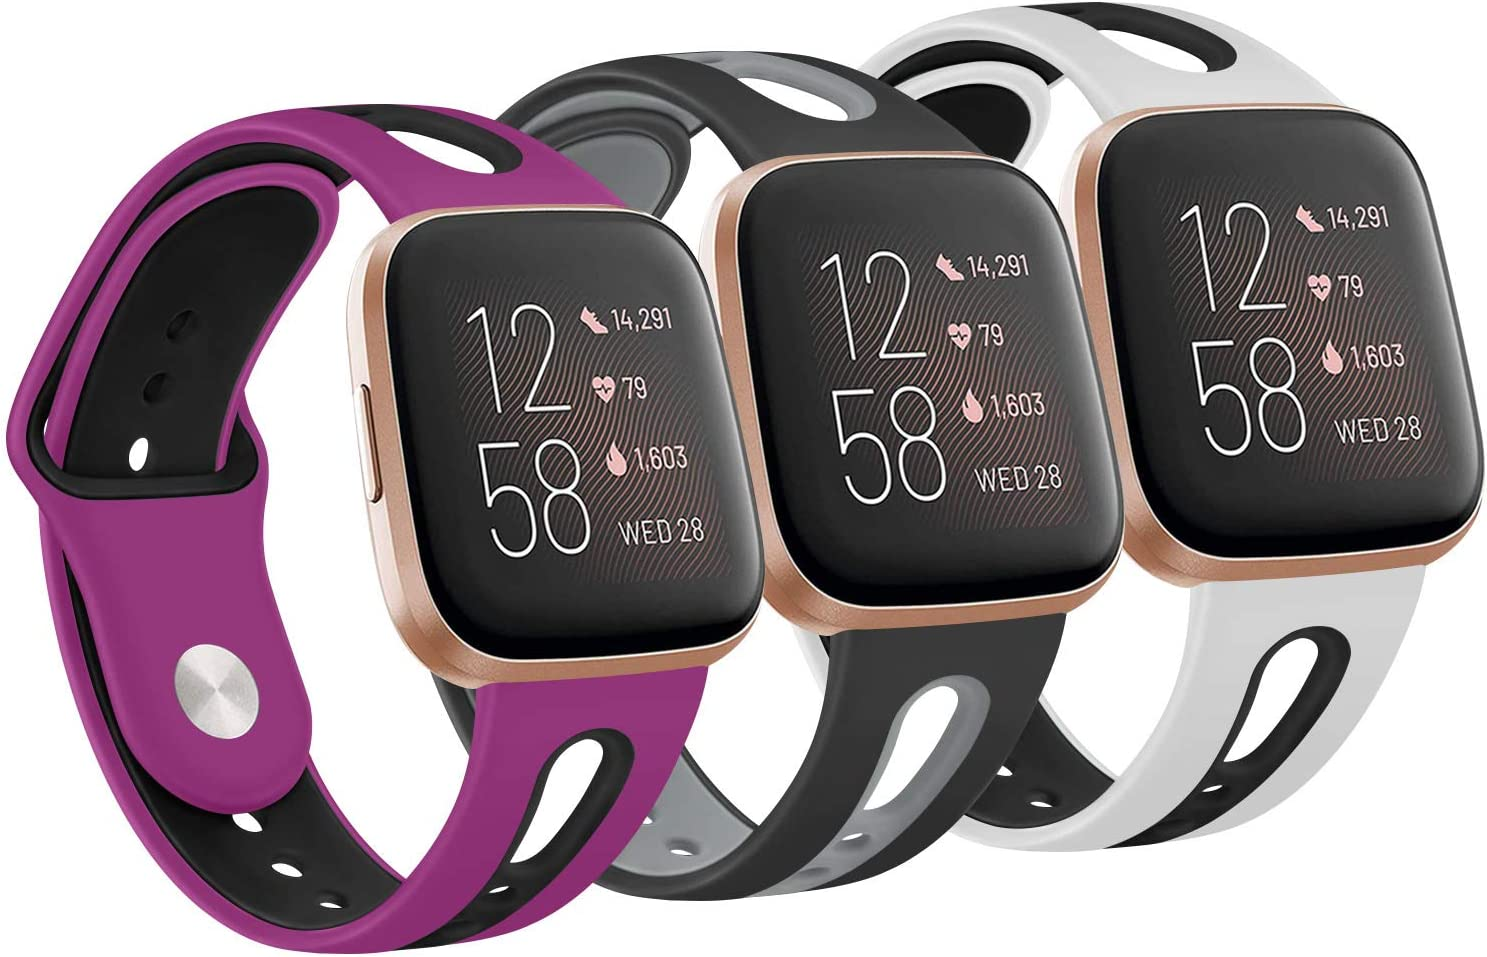 [PACK 3] Silicone Bands Compatible with Fitbit Versa 2 / Fitbit Versa/Versa Lite/Versa SE, Soft Breathable Replacement Wristbands Accessories for Women Men (Small, White/Black+Black/Gray+Purple/Black)